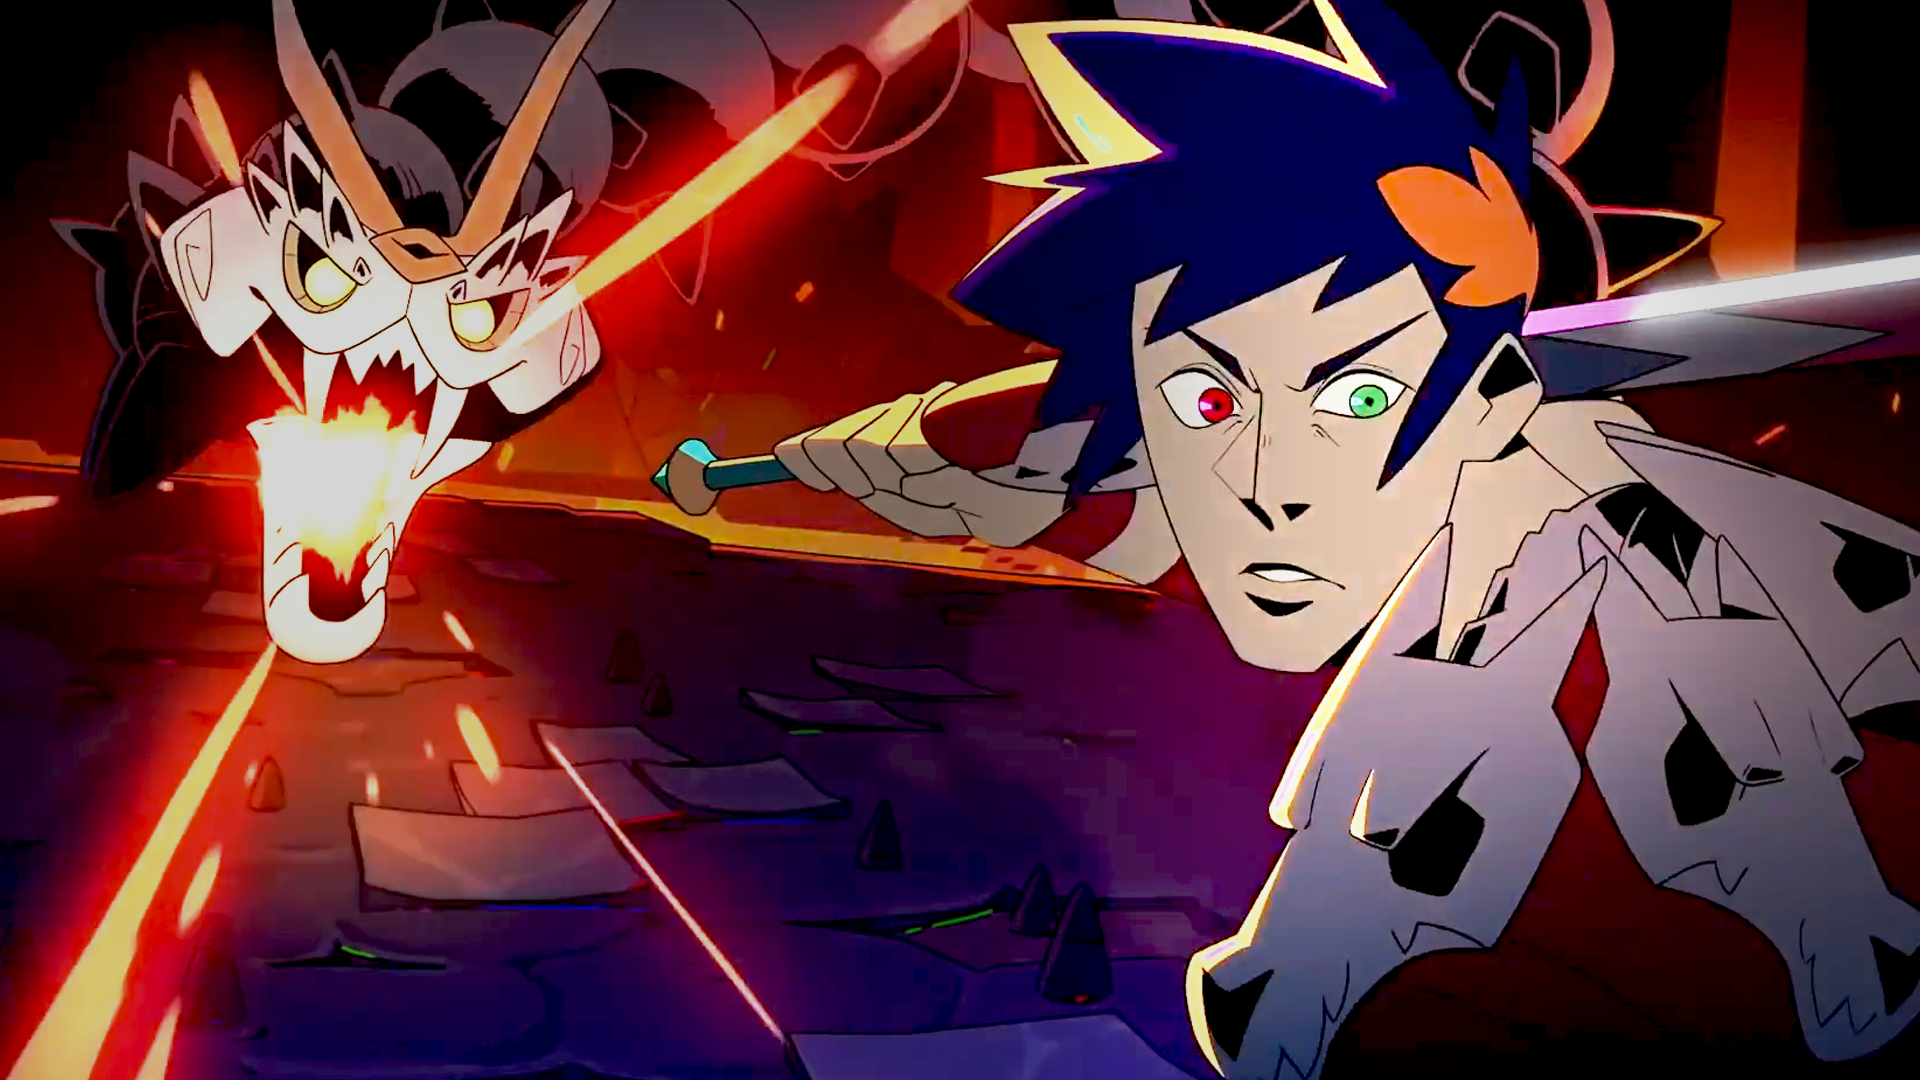 A cartoon Zagreus from the game Hades looks at the viewer with a confused face while a bone hydra behind him prepares to blast him with energy.